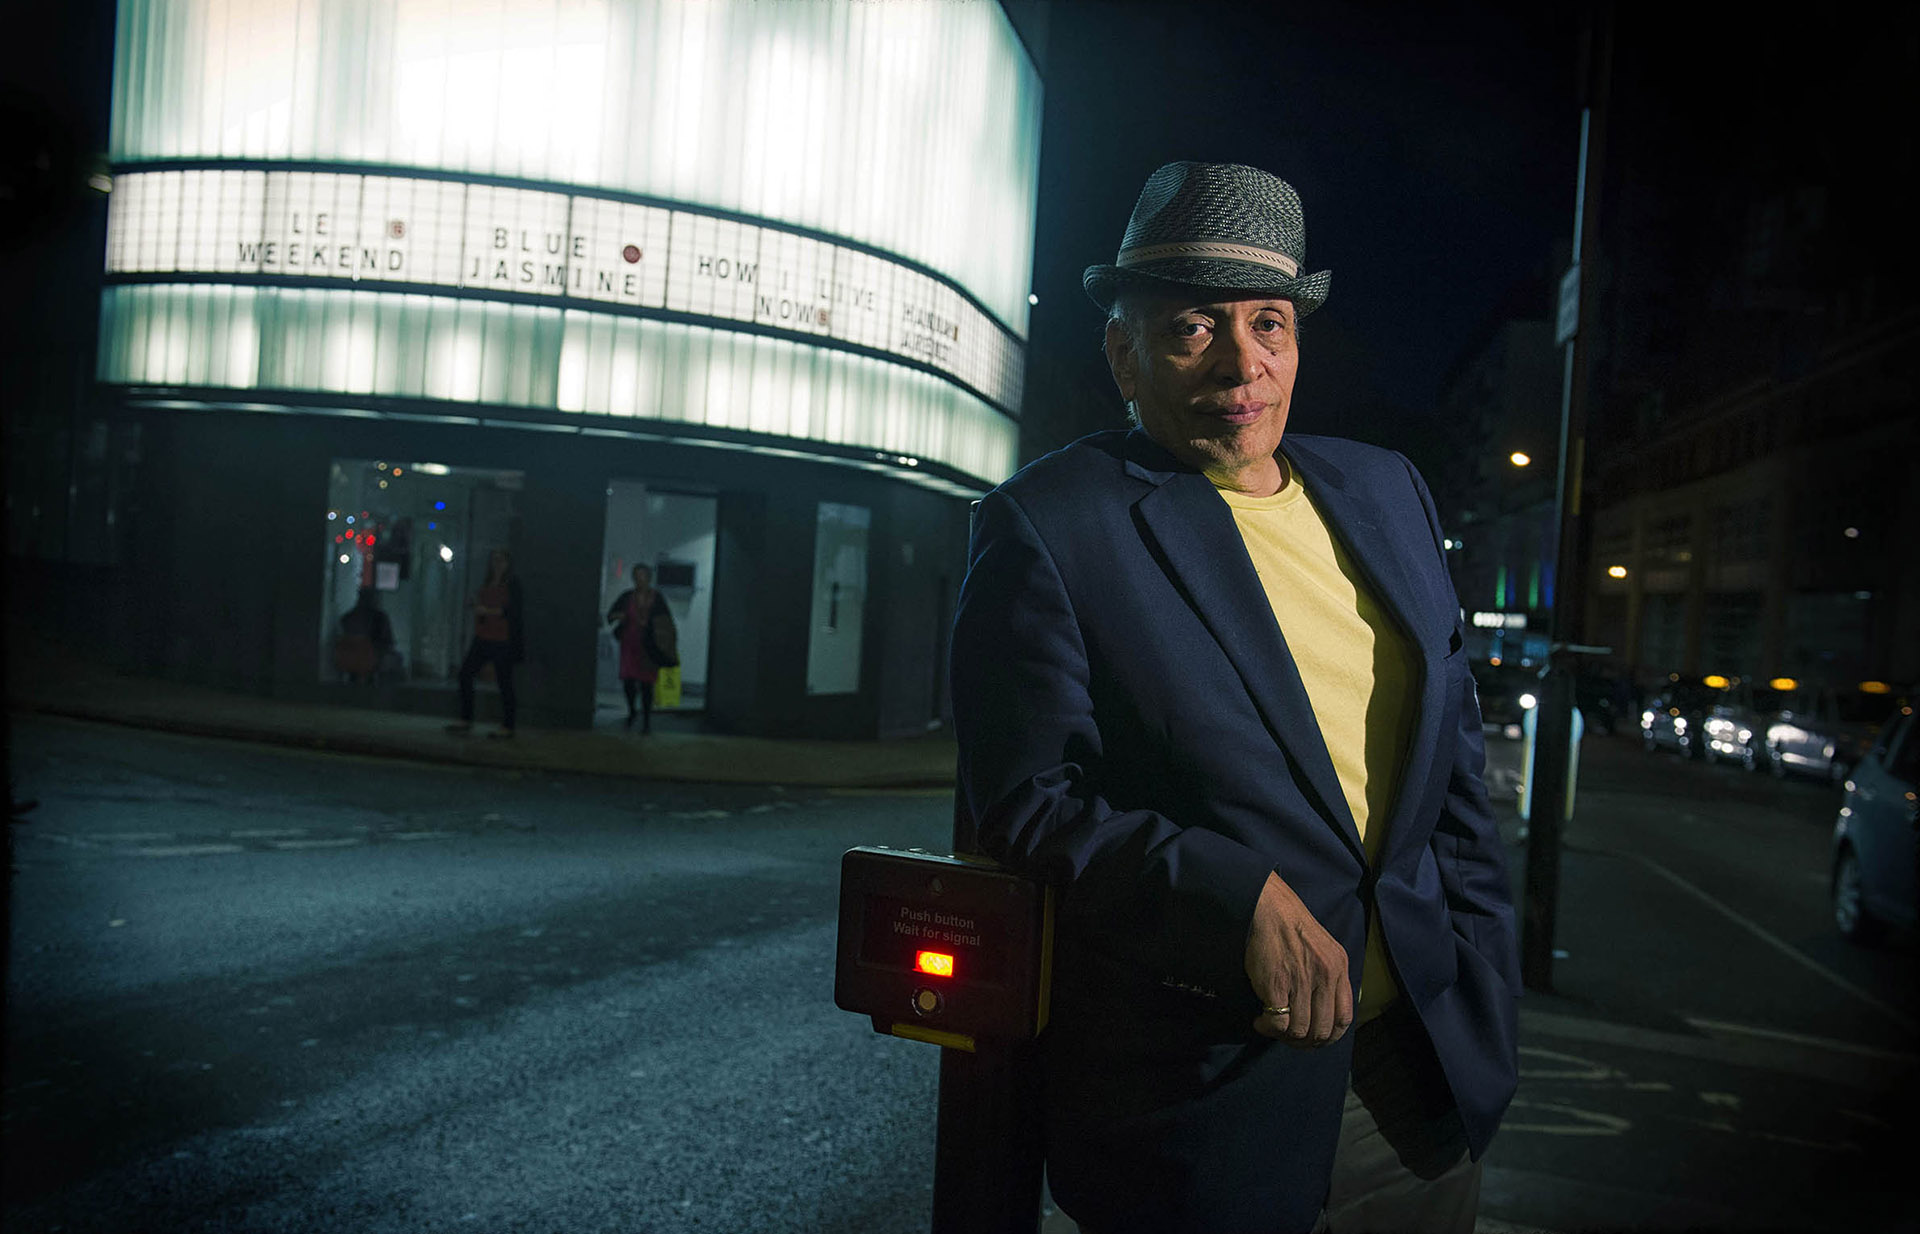 Photograph of Author Walter Mosley outside Cornerhouse Manchester author photographer Jon Parker Lee